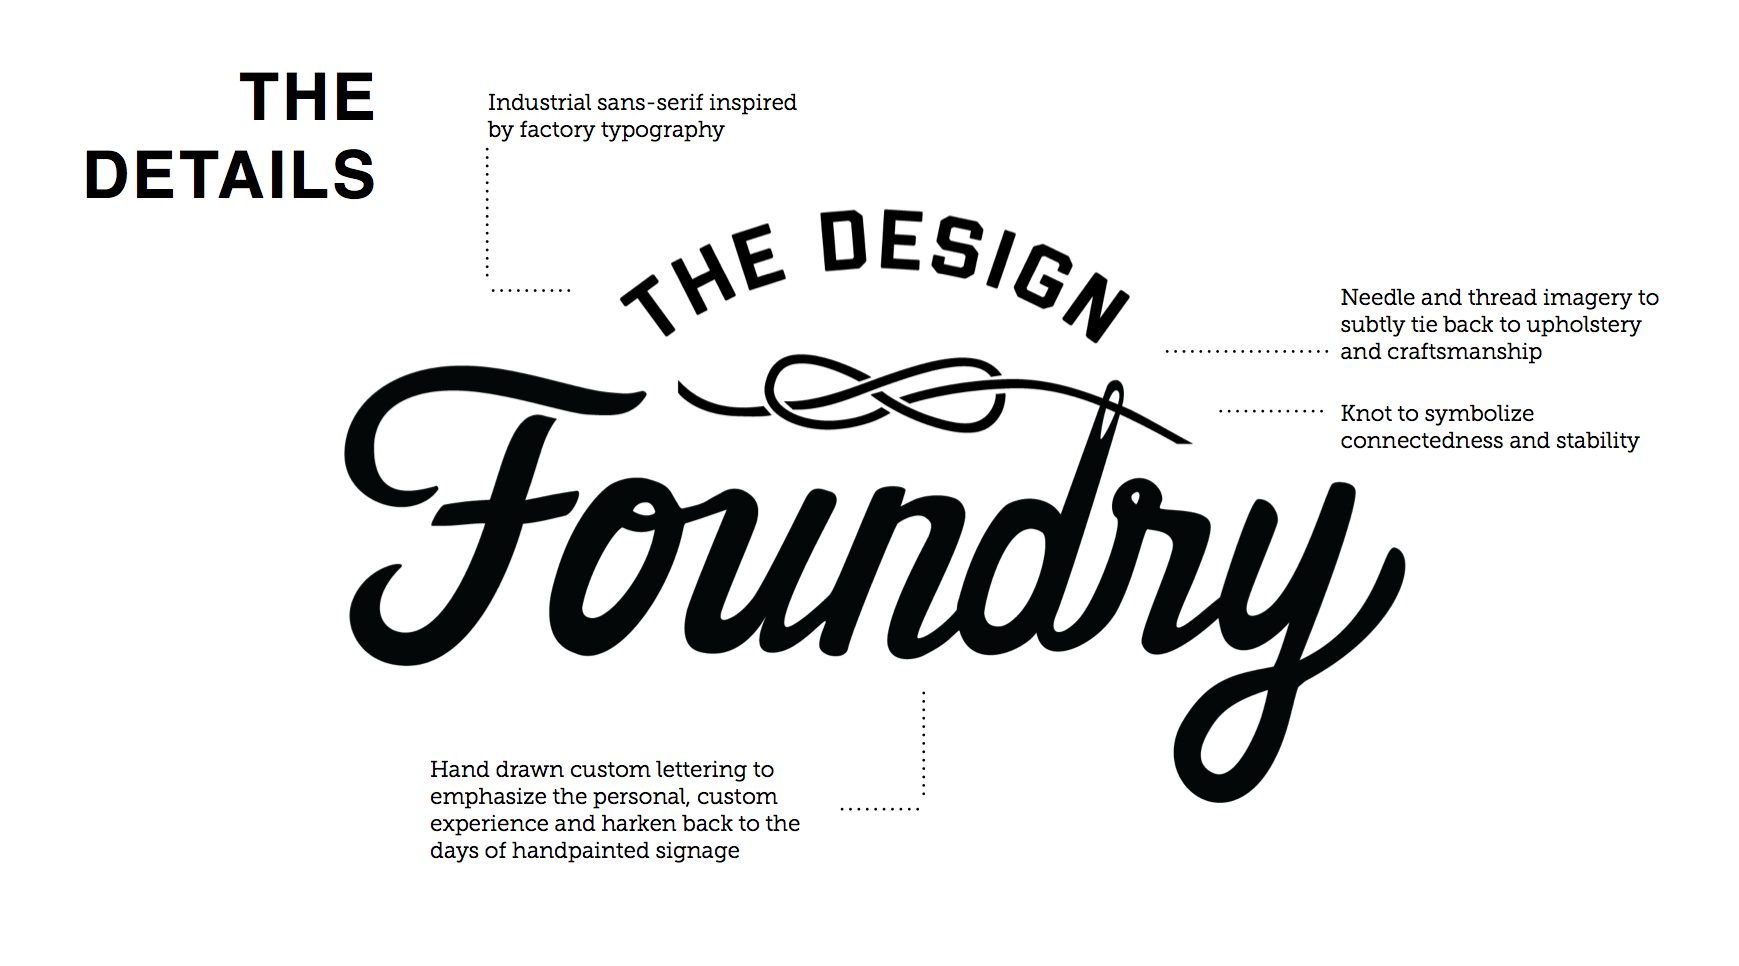 The initial logo presentation and explanation